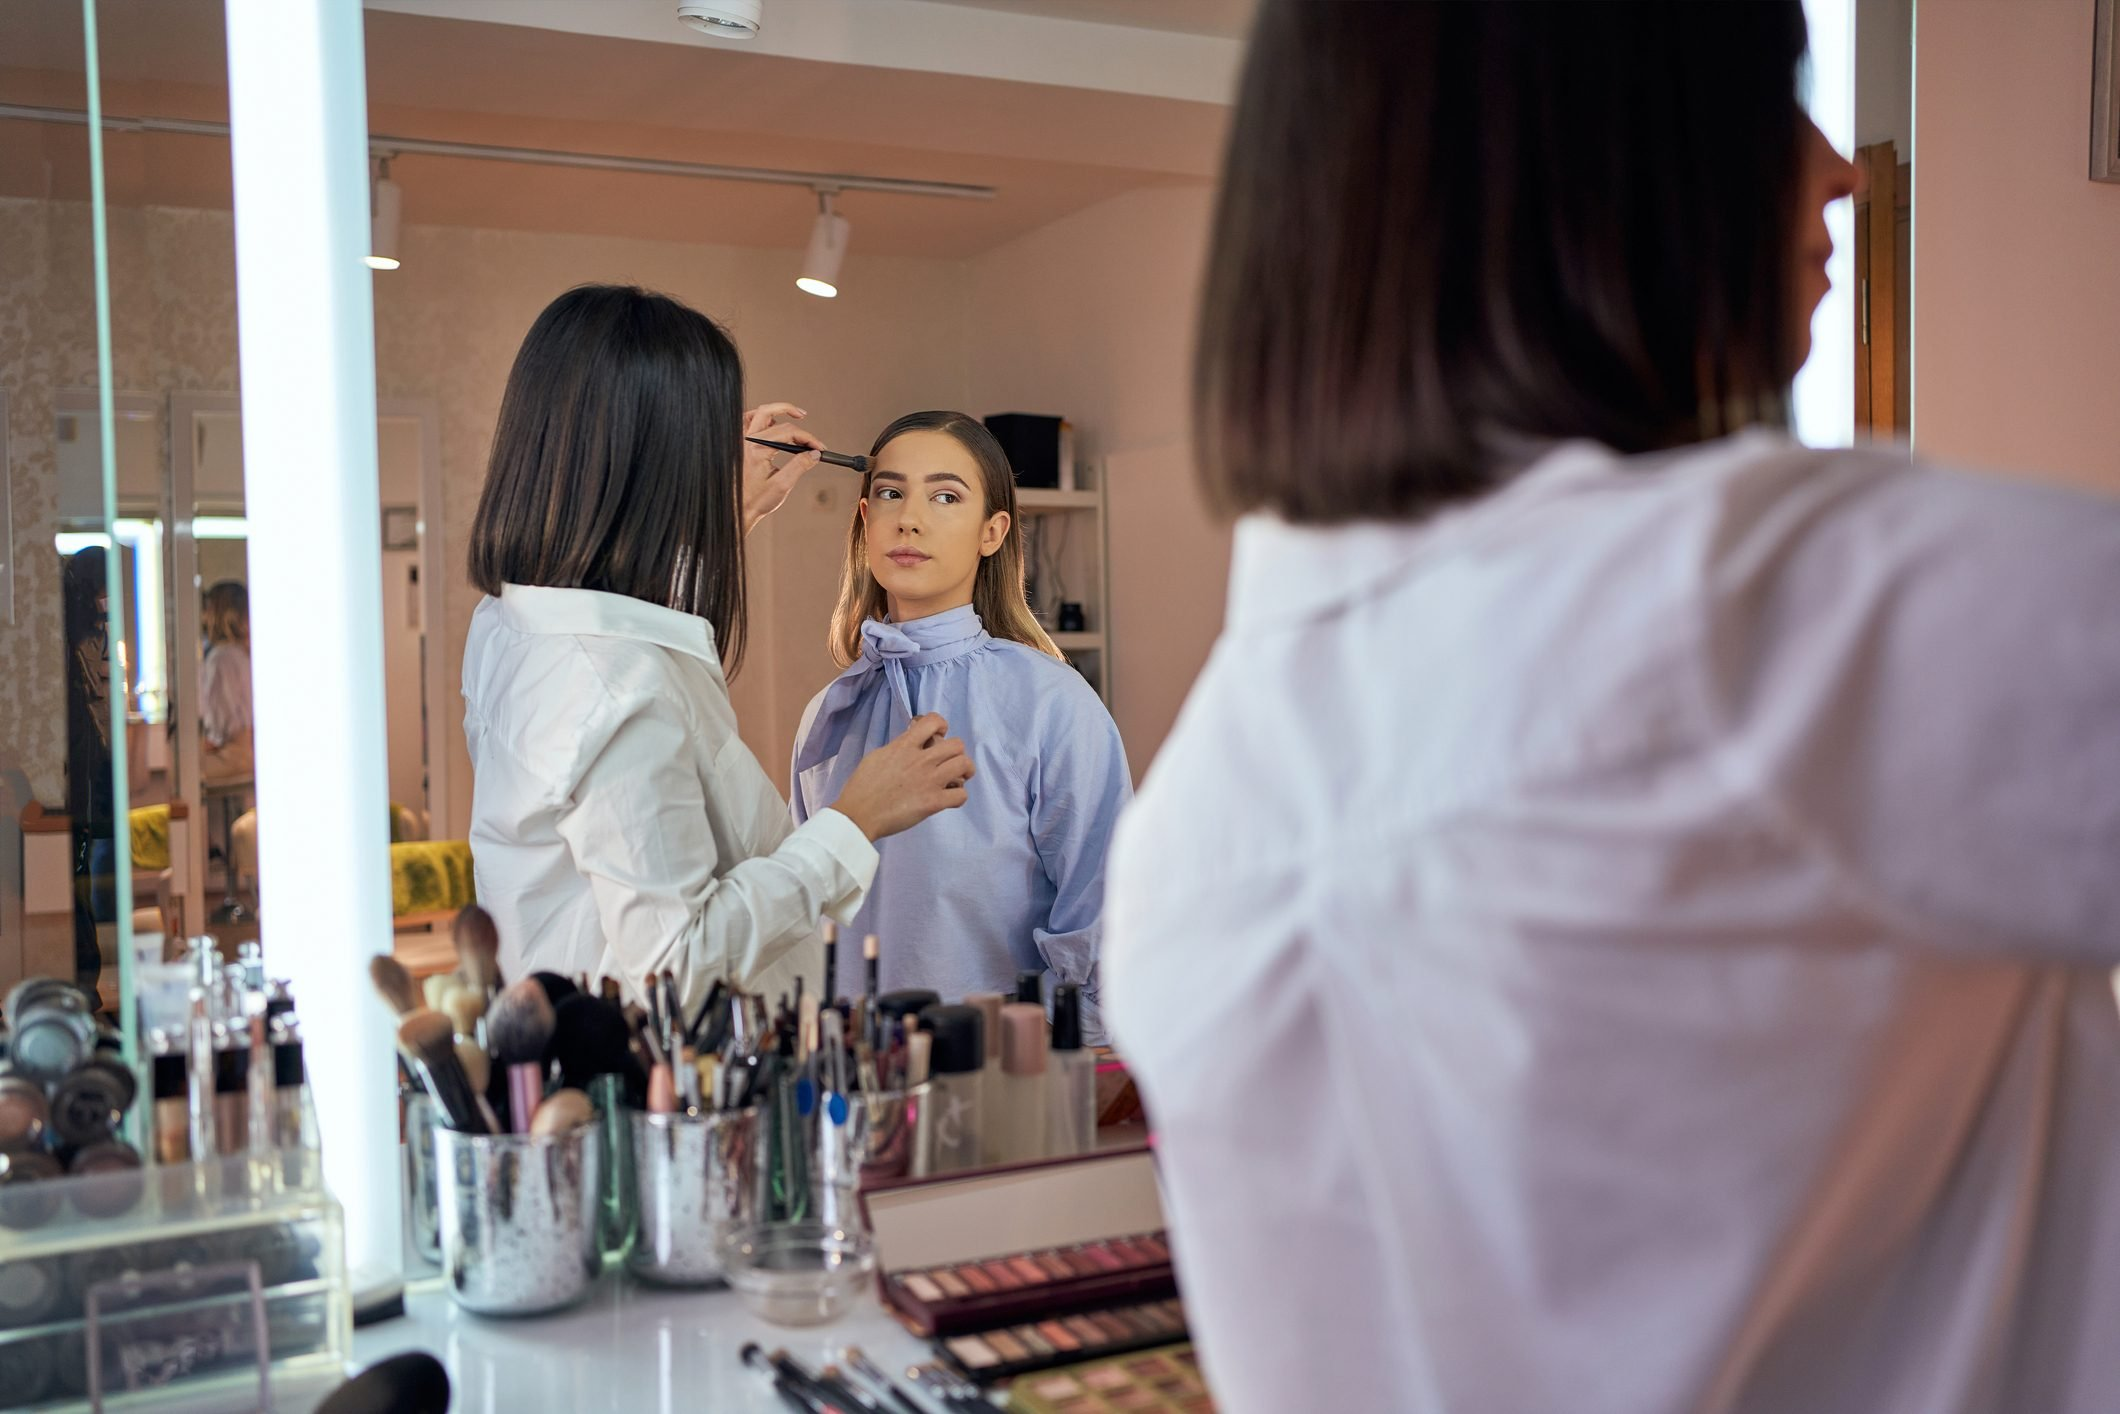 Satisfied customer looking herself in the mirror while professional make up artist using her magic